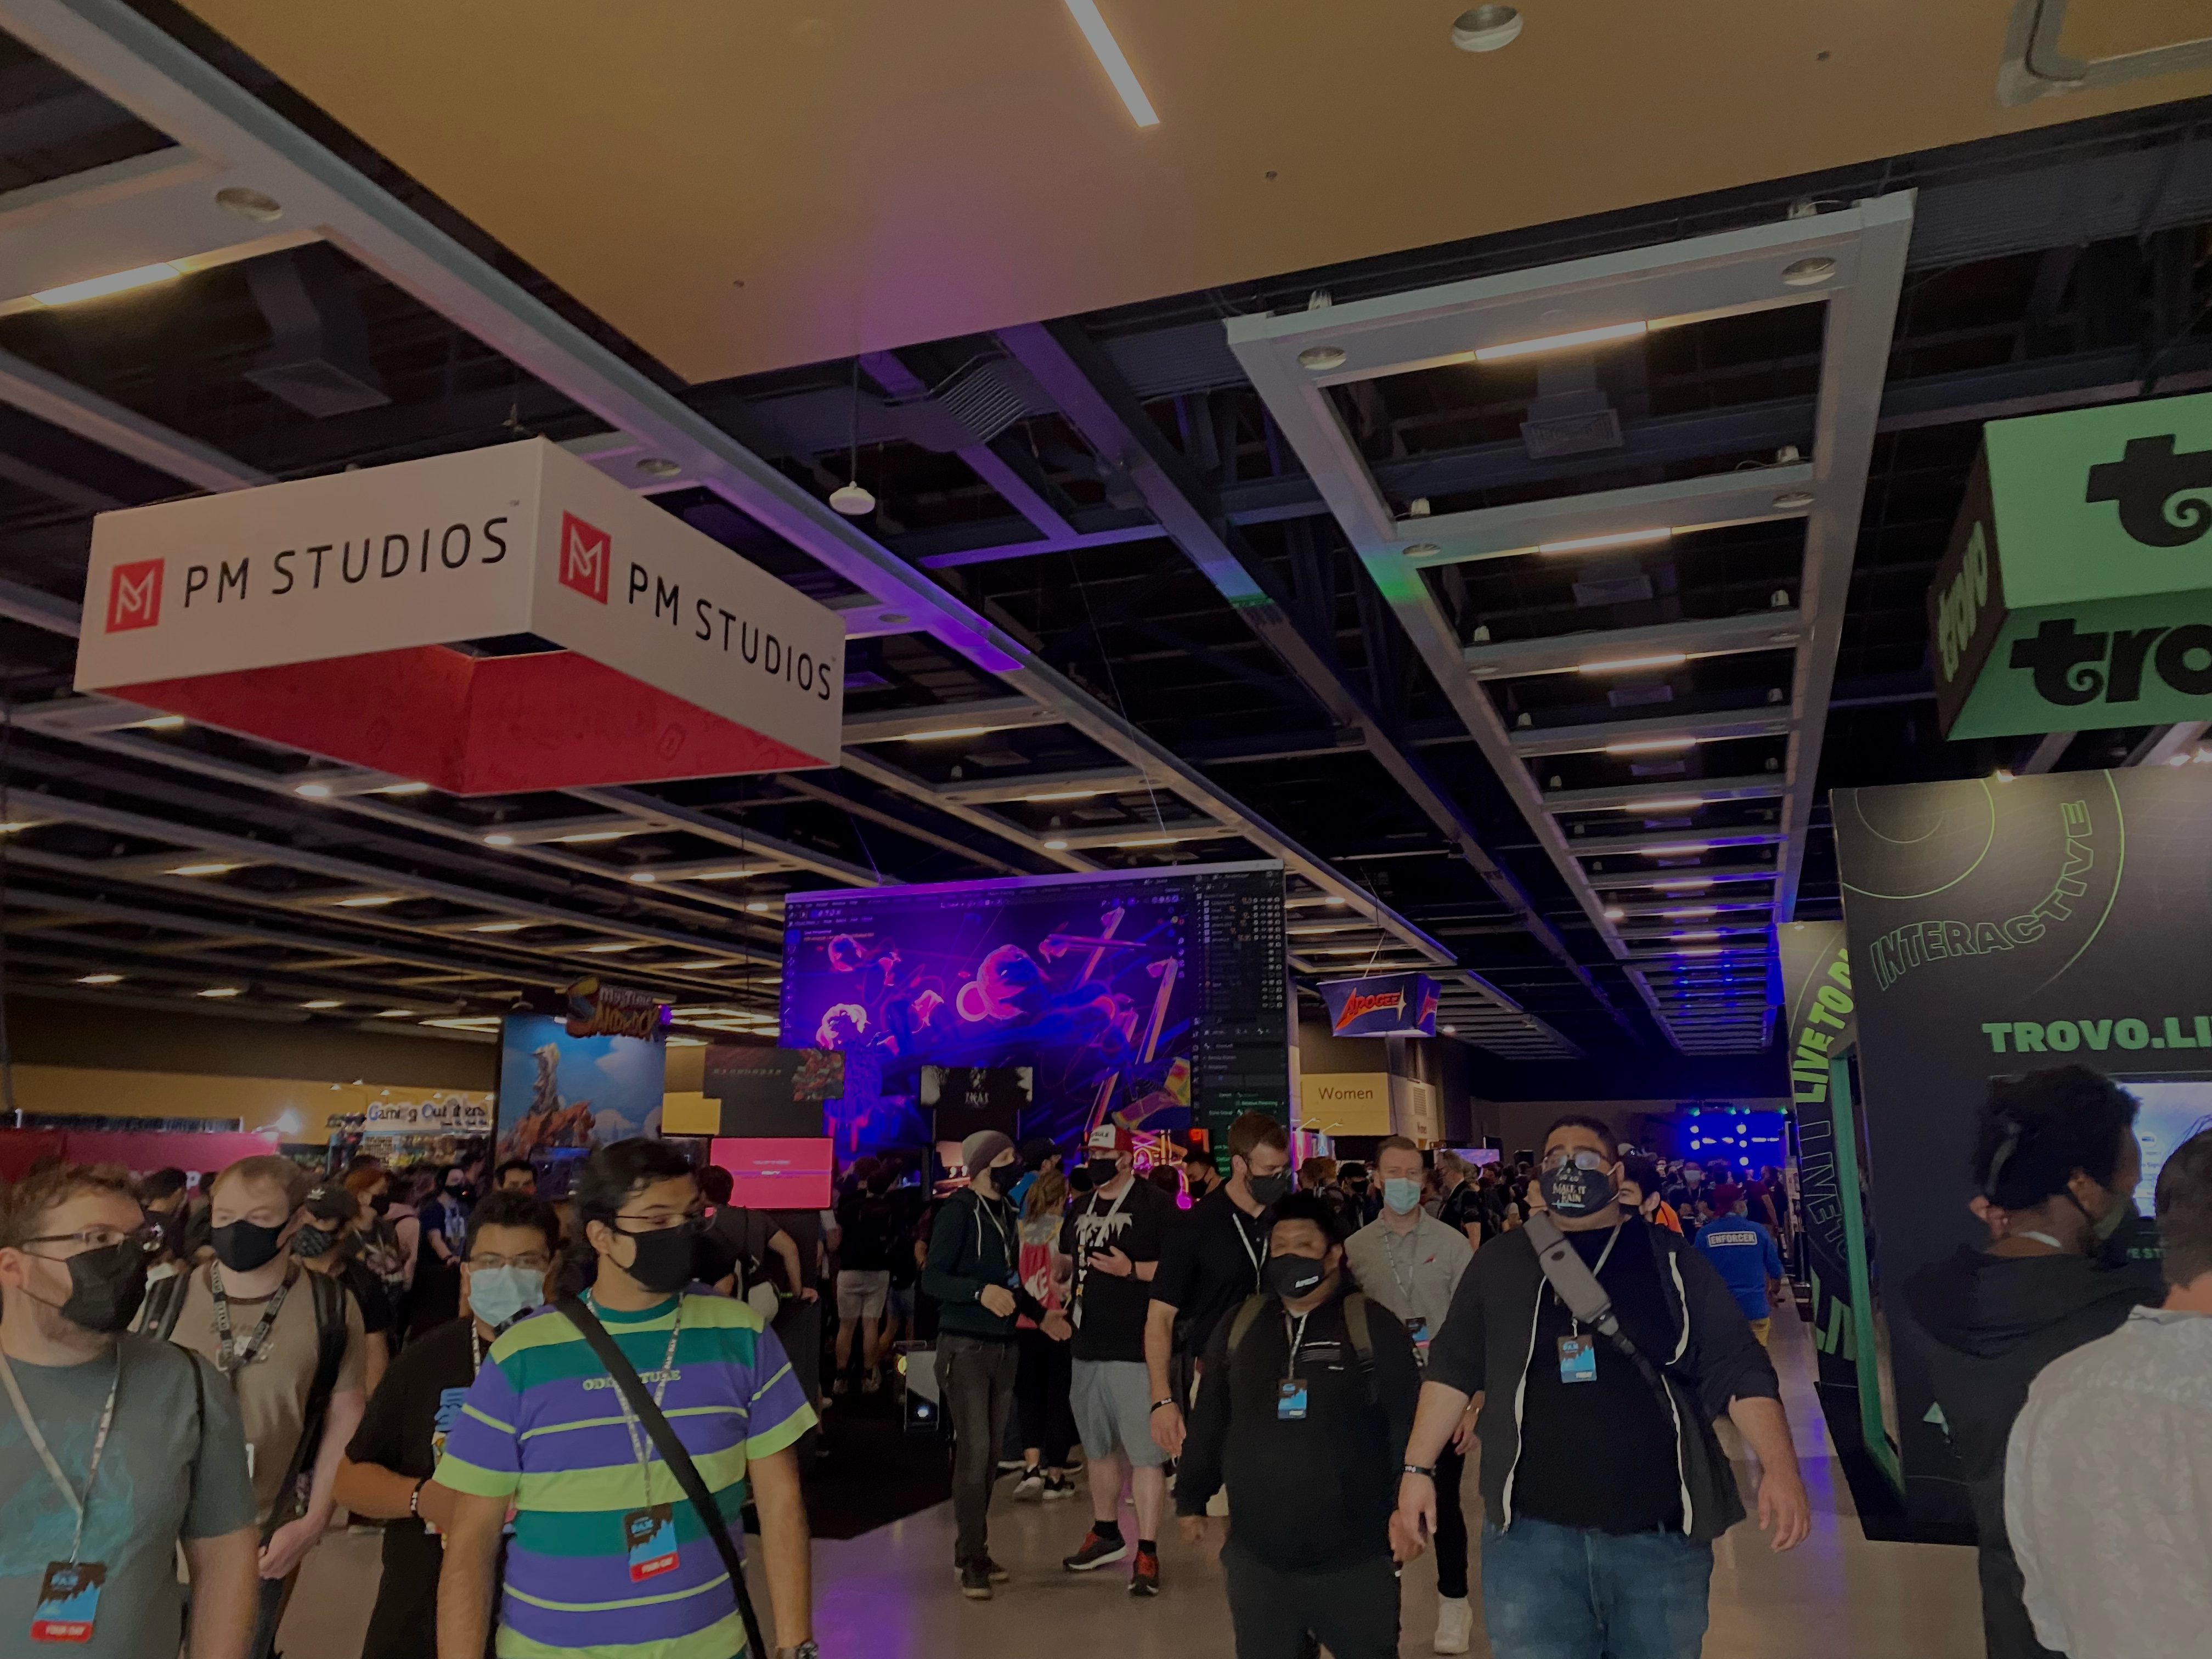 A photo of the crowd at PAX West in Seattle